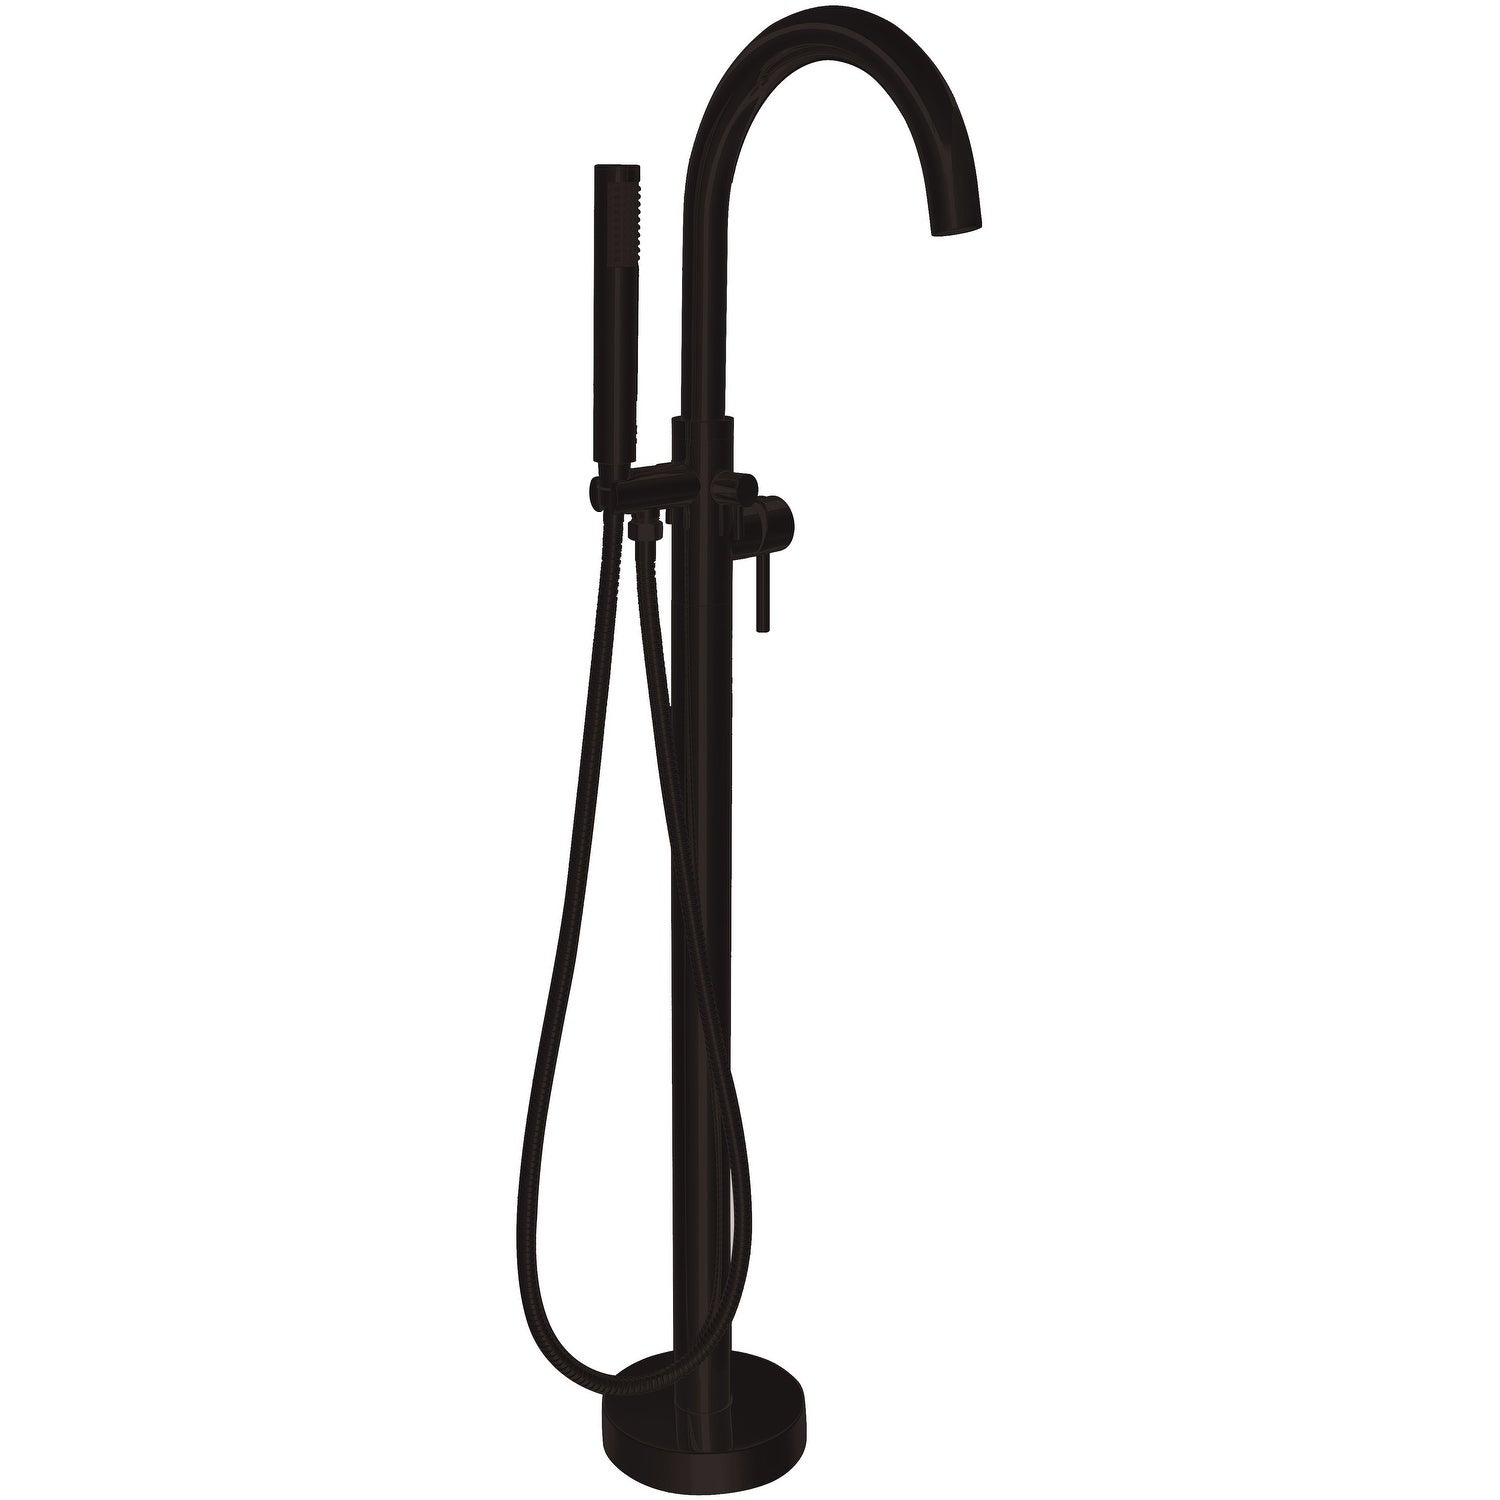 Anzzi Kros 2 Handle Freestanding Claw Foot Tub Faucet With Hand Shower In Matte Black